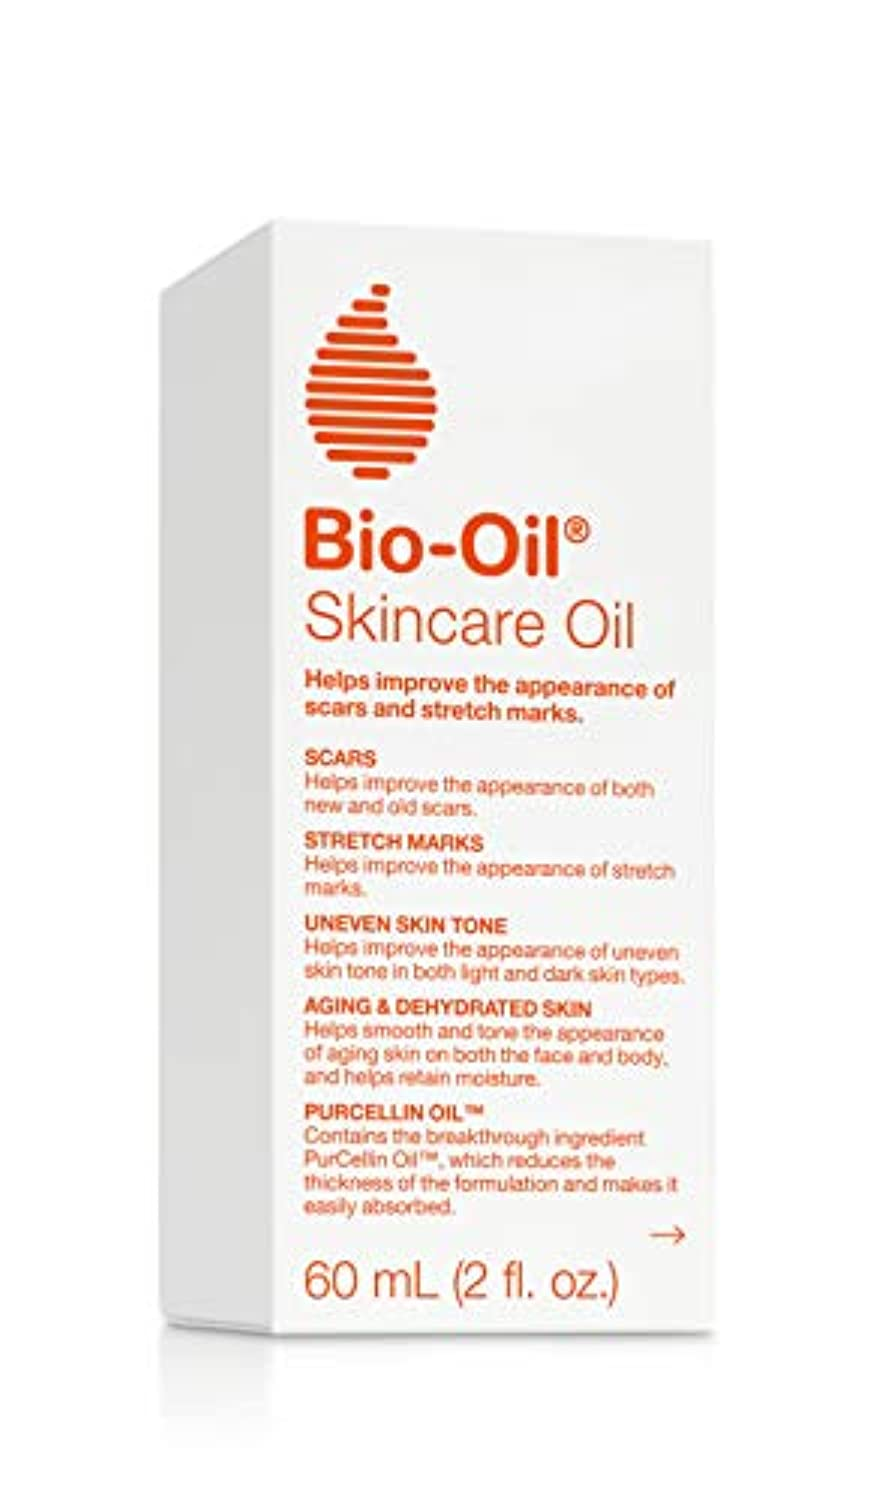 Classier: Buy Bio-Oil Bio-Oil Skincare Oil, 2 Ounce, Body Oil for Scars and Stretchmarks, Hydrates Skin, Non-Greasy, Dermatologist Recommended, Non-Comedogenic, For All Skin Types, with Vitamin A, E